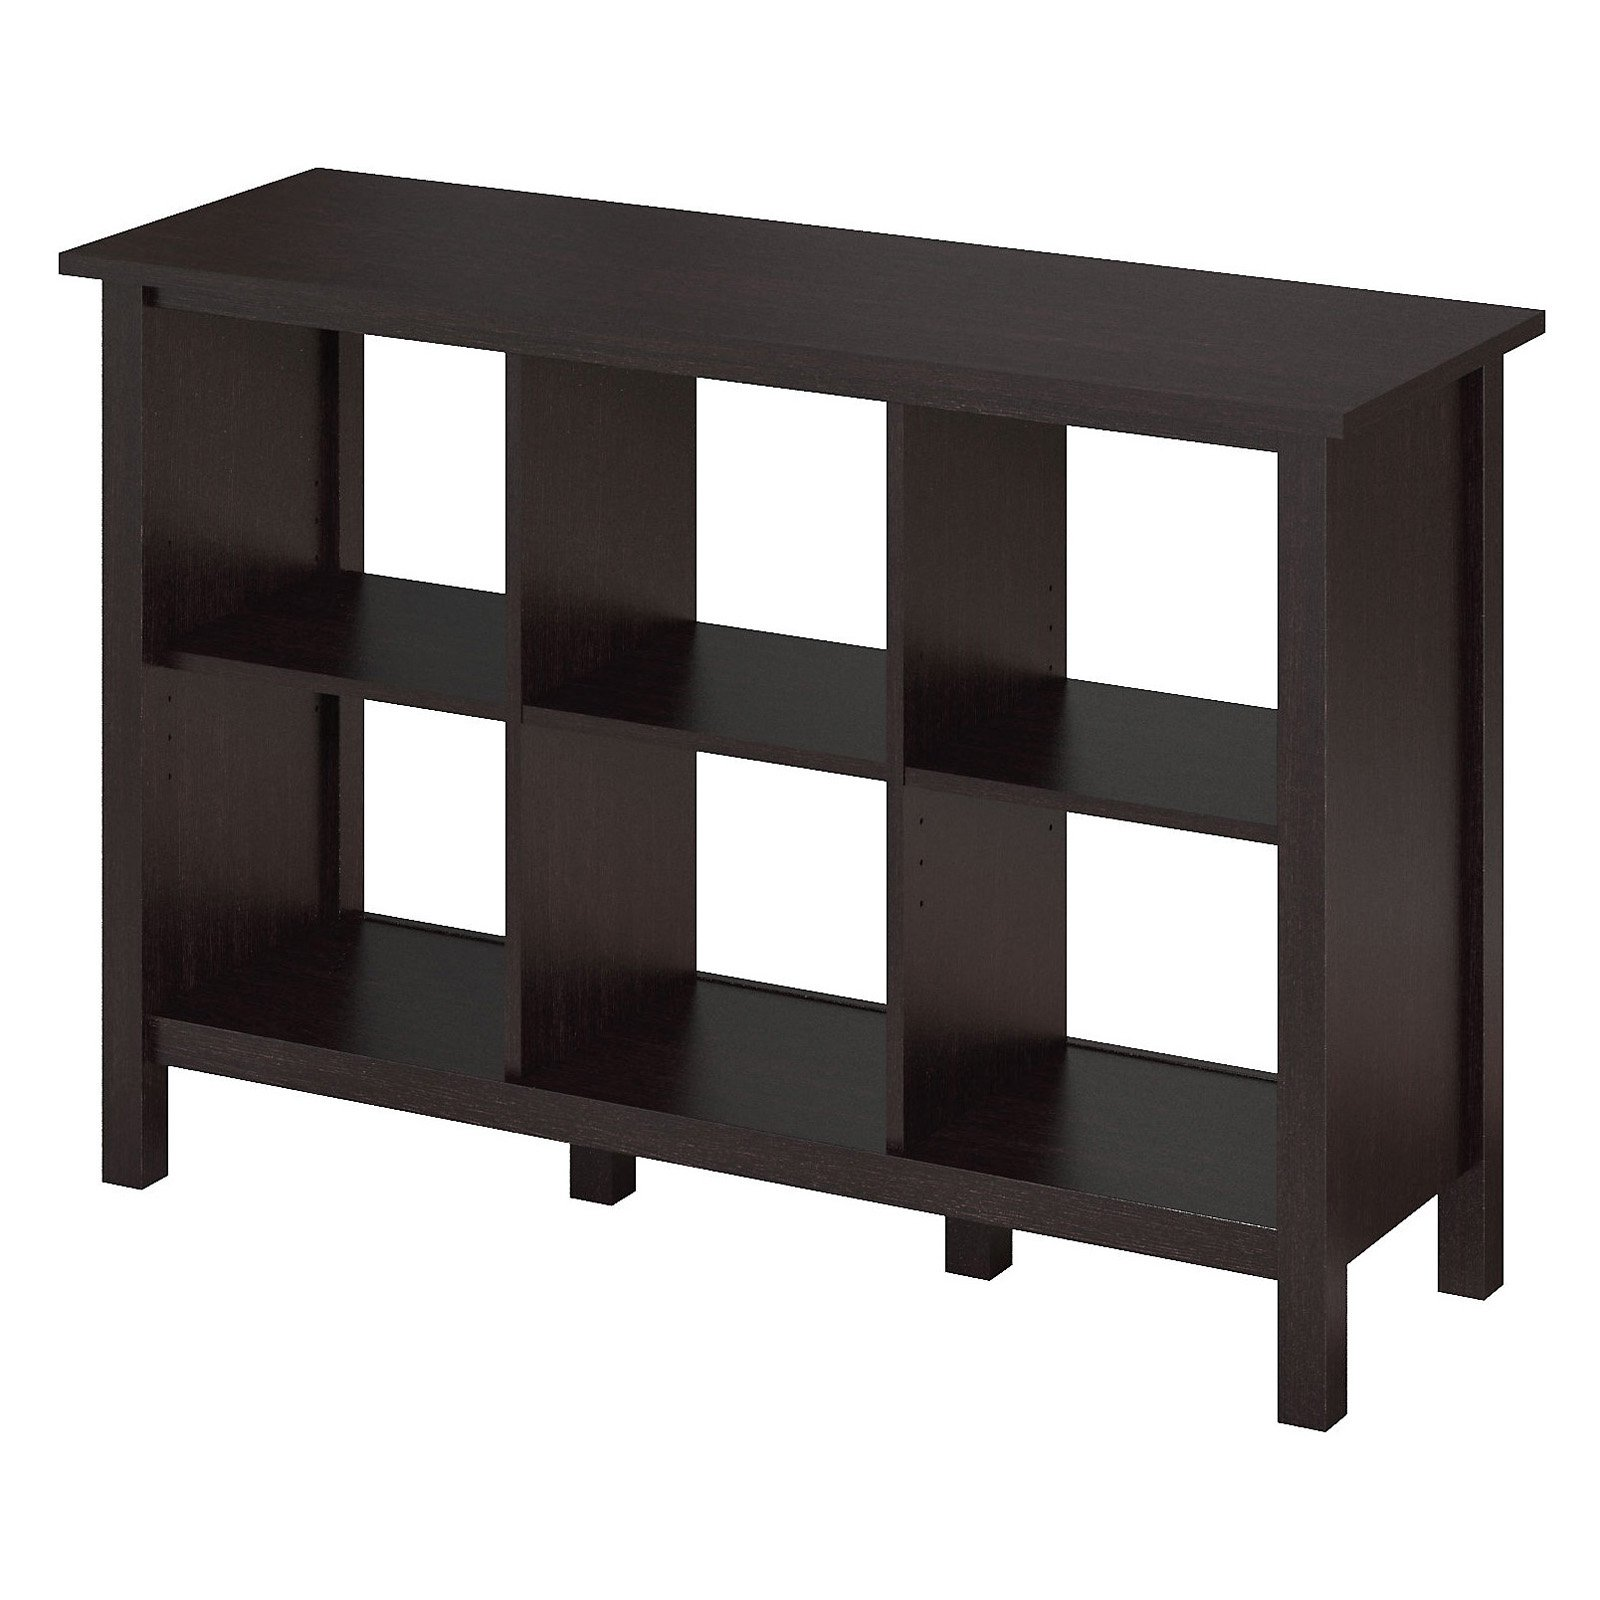 Broadview Six Cube Storage Bookcase